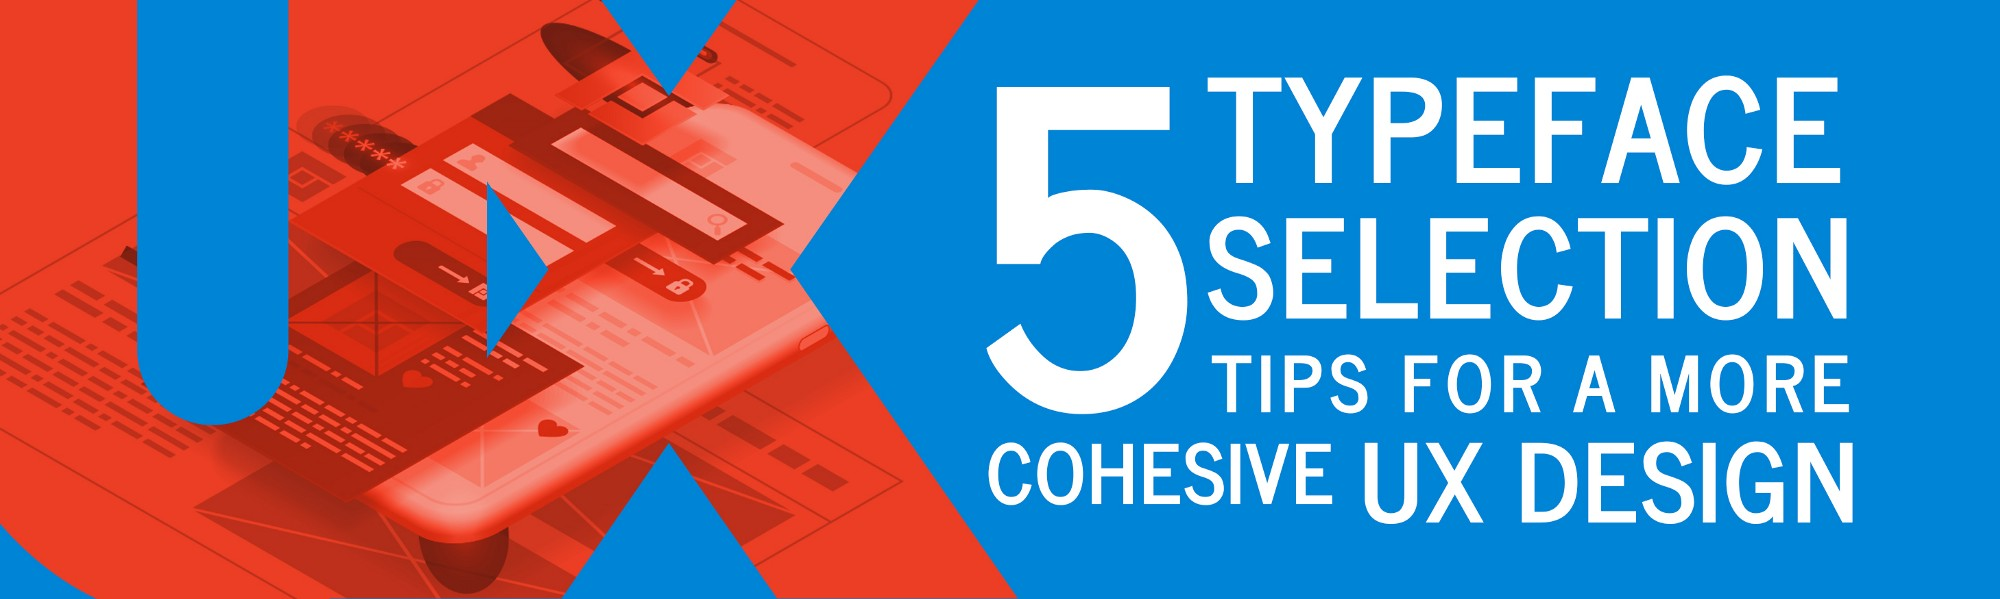 5 Typeface Selection Tips for a More Cohesive UX Design